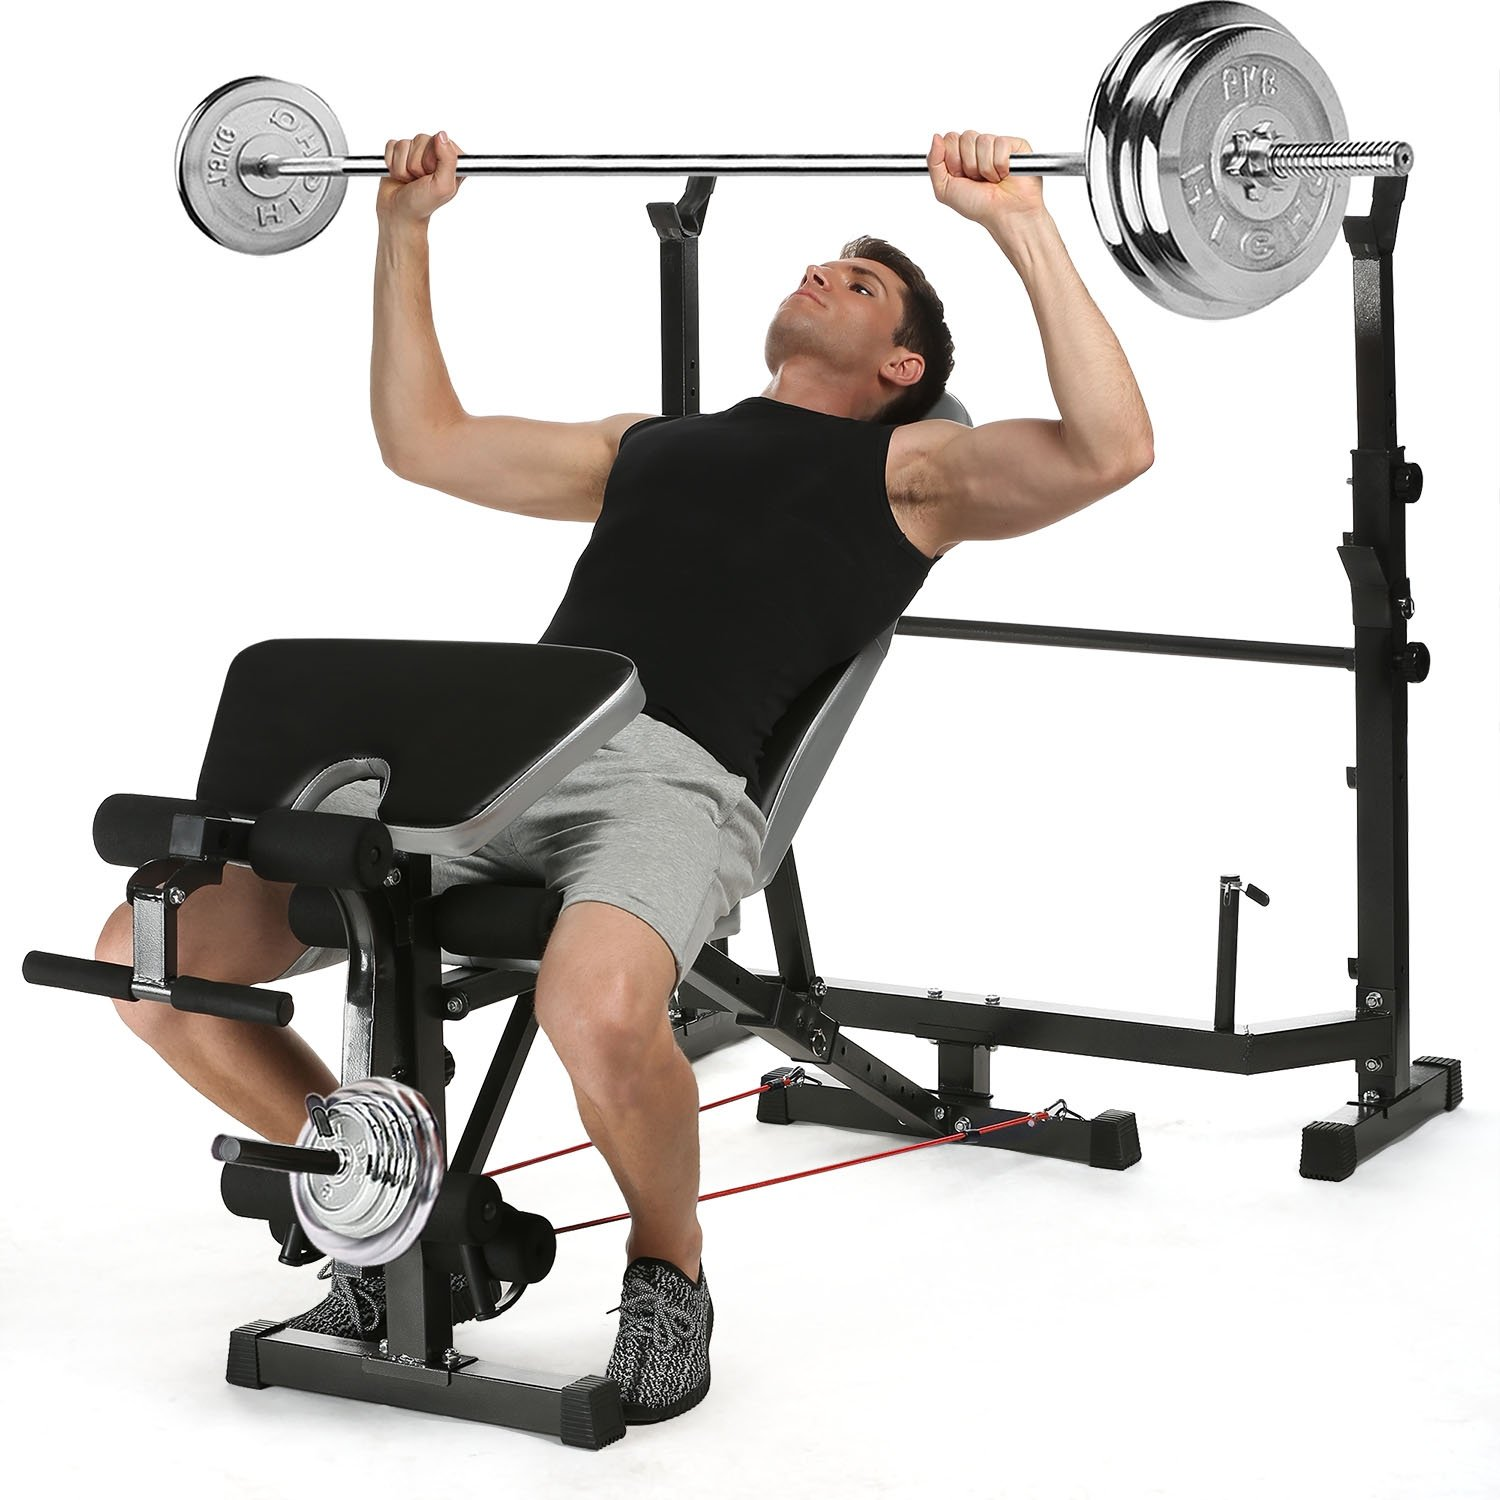 Lantusi Proffesional Fitness Home Use Weight Bench Multi-Function Adjustable Squat Rack for Indoor Exercise(US STOCK)